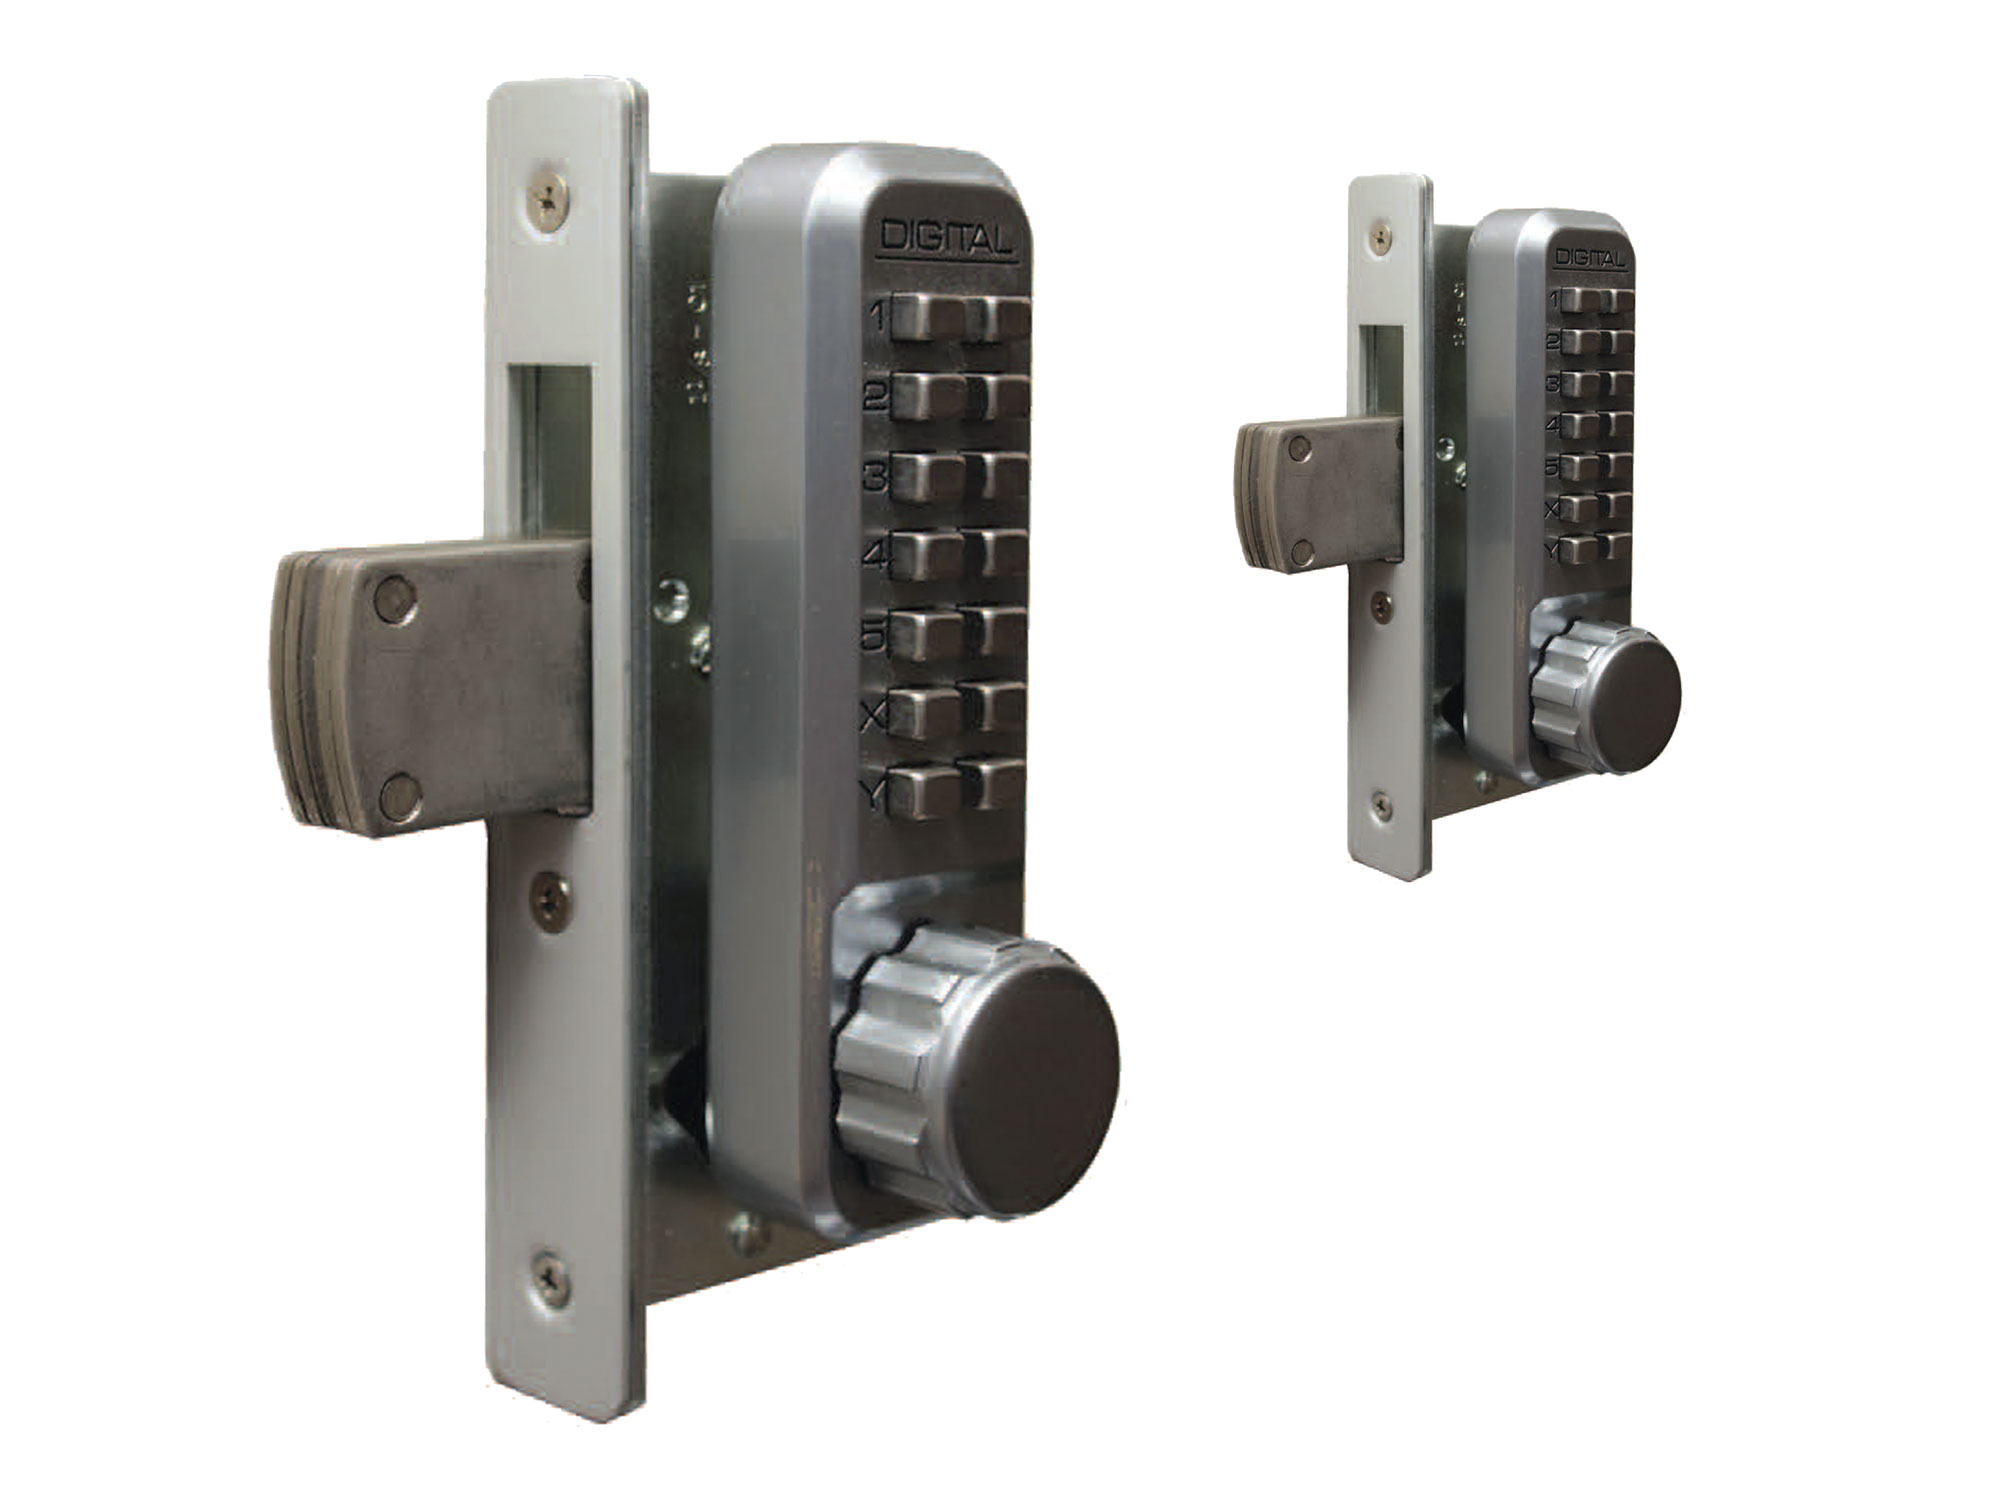 Lockey 2900DC Narrow-Stile Knob-Handle Double-Keypad Deadbolt Lock